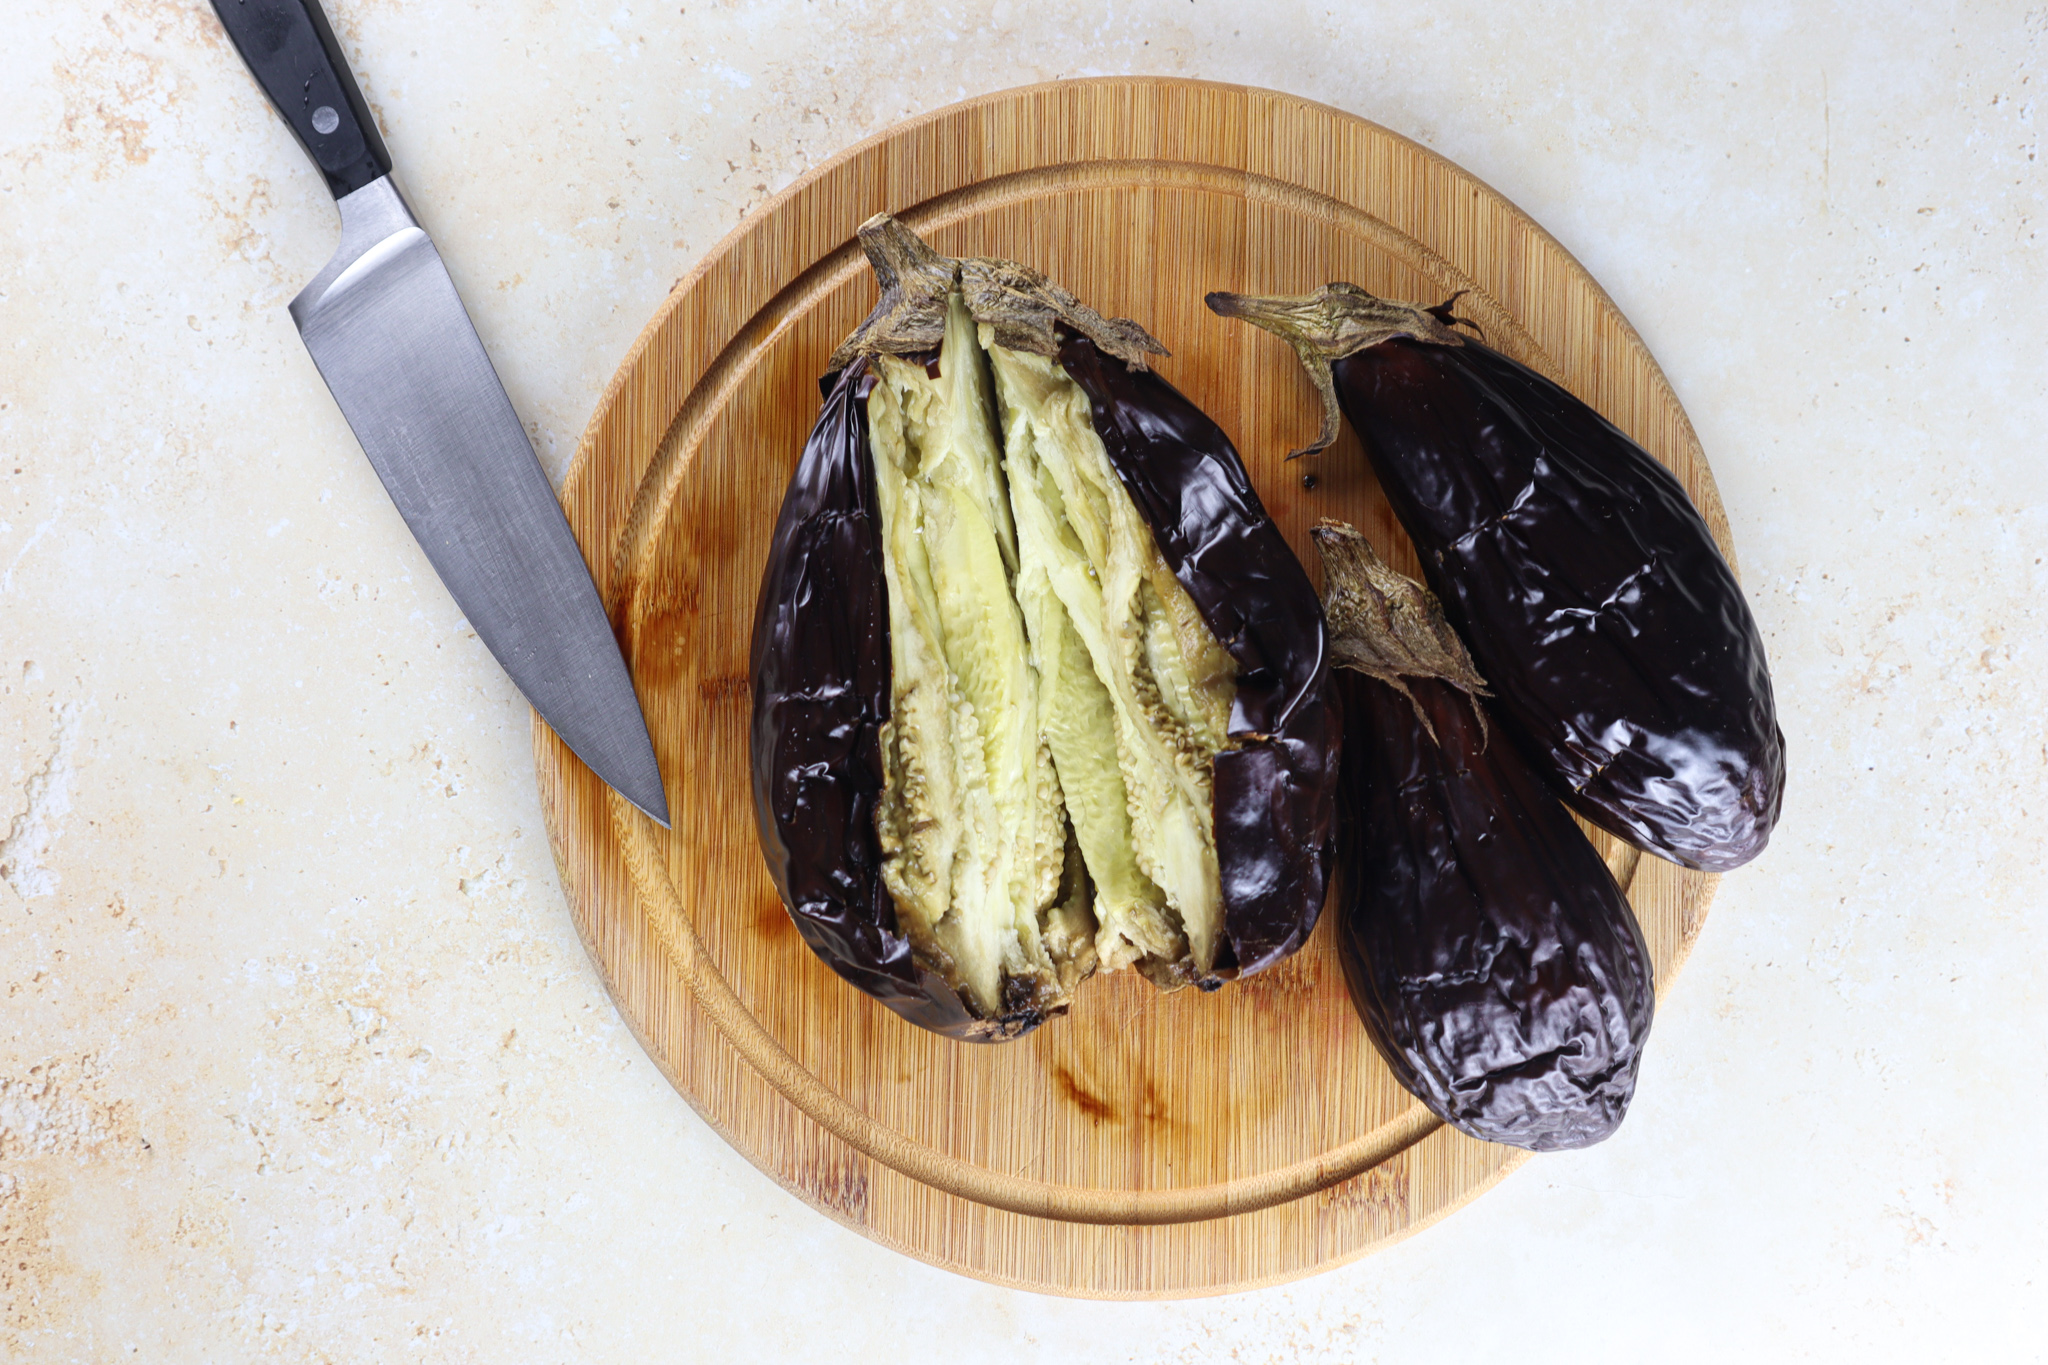 It almost looks like hummus and often served together, but baba ganoush calls for grilled or smoked eggplants instead of chickpeas.